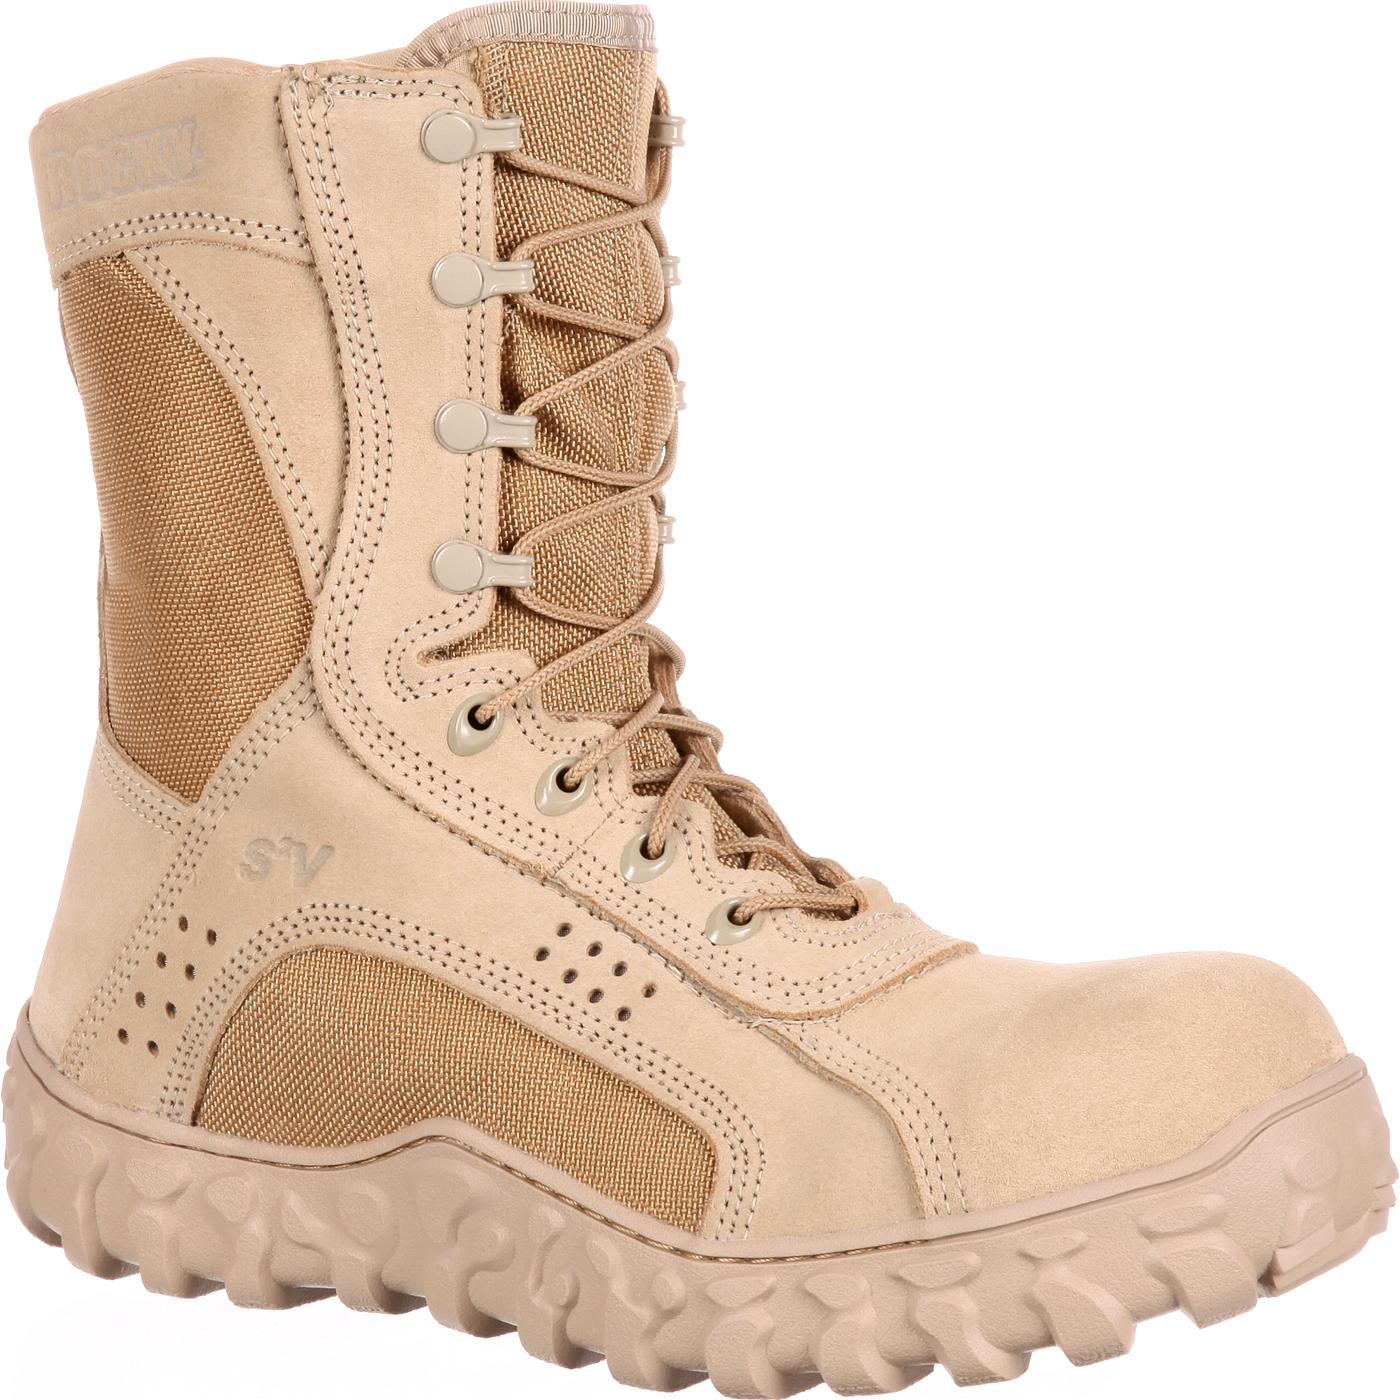 Rocky S2v Composite Toe Tactical Military Boot Rkyc028